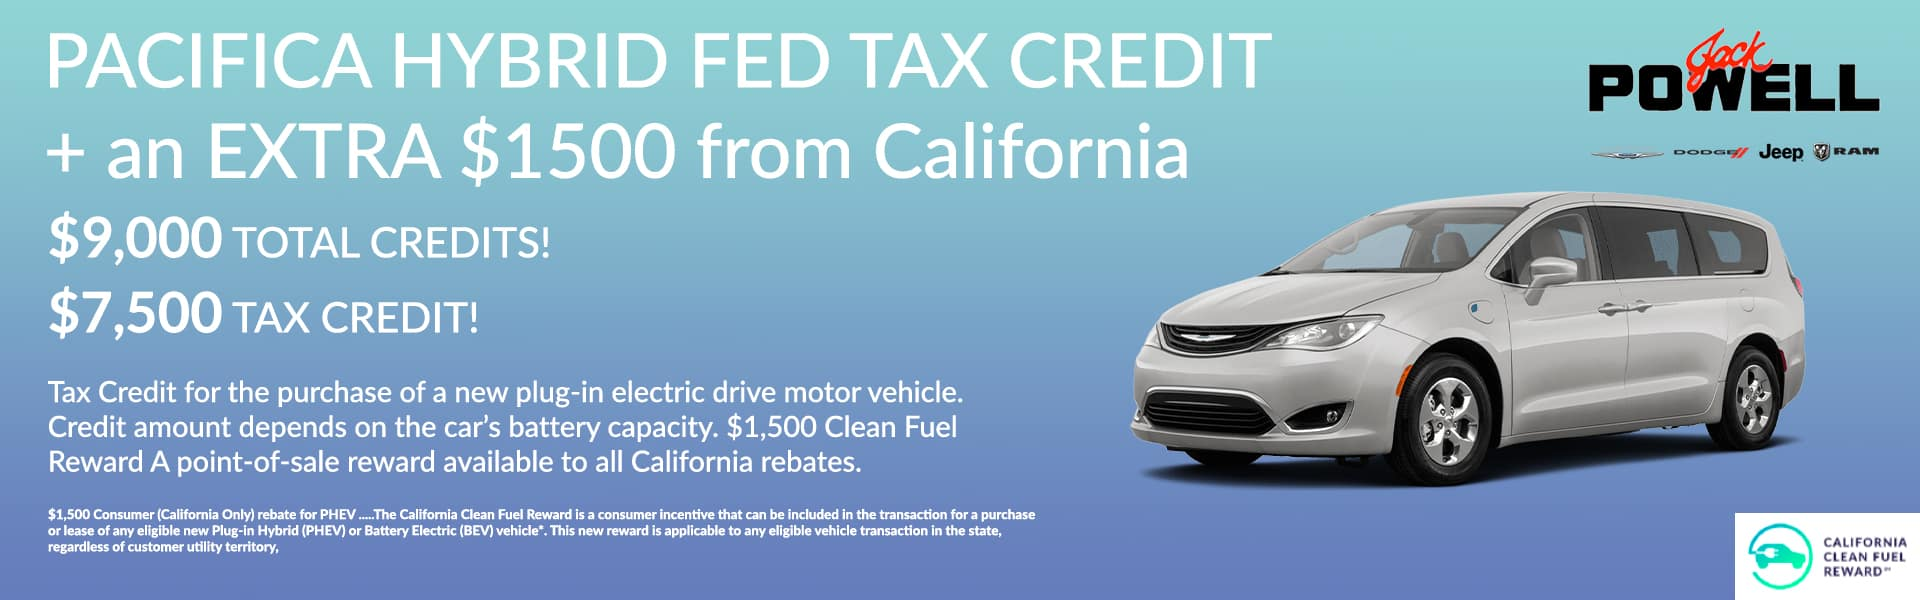 PACIFICA HYBRID FED TAX CREDIT + an EXTRA $1500 from California